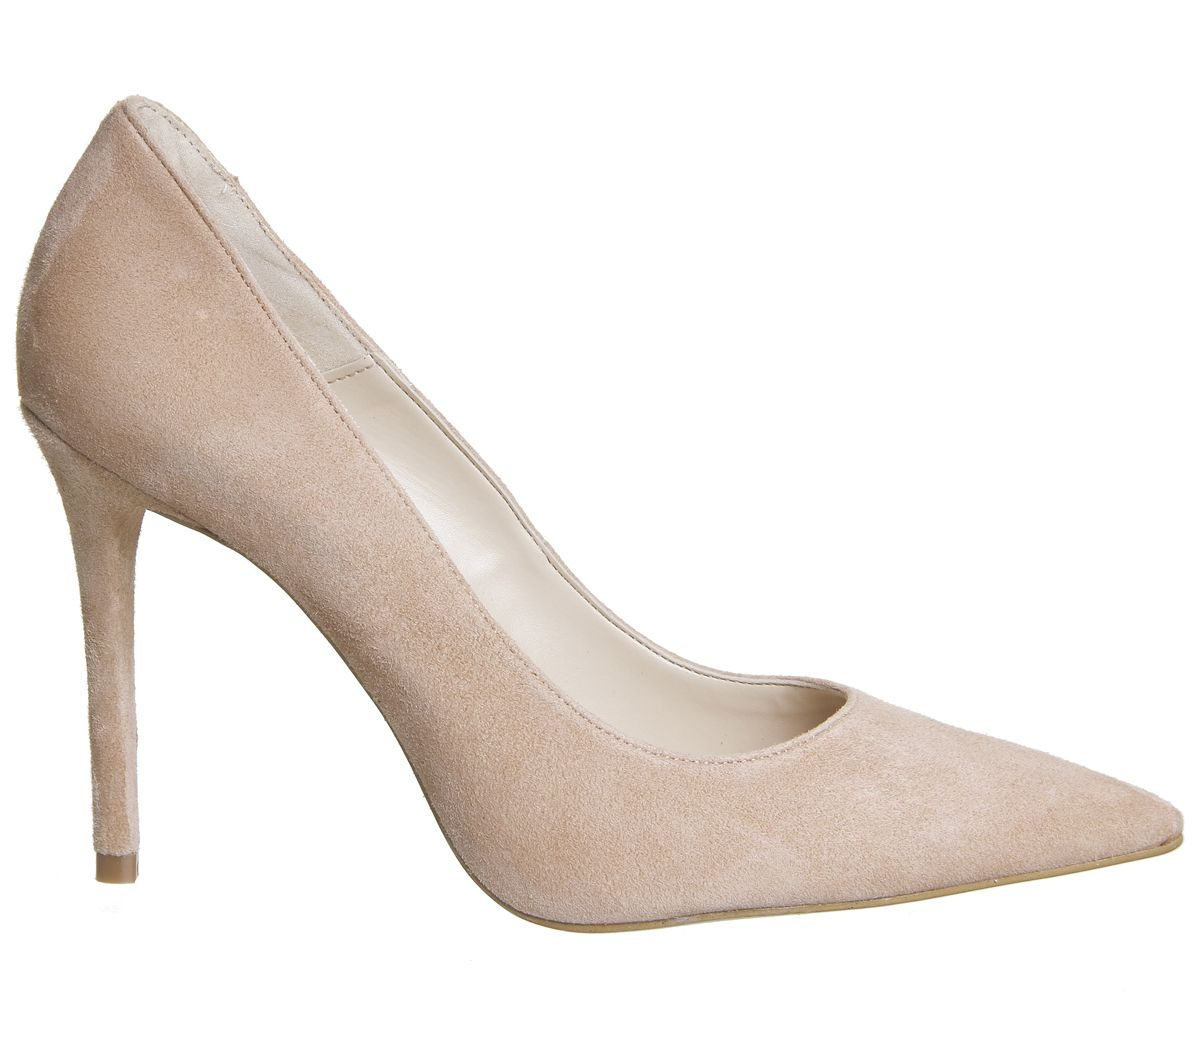 246cc08db Office Hattie Point Court Heels Nude - High Heels